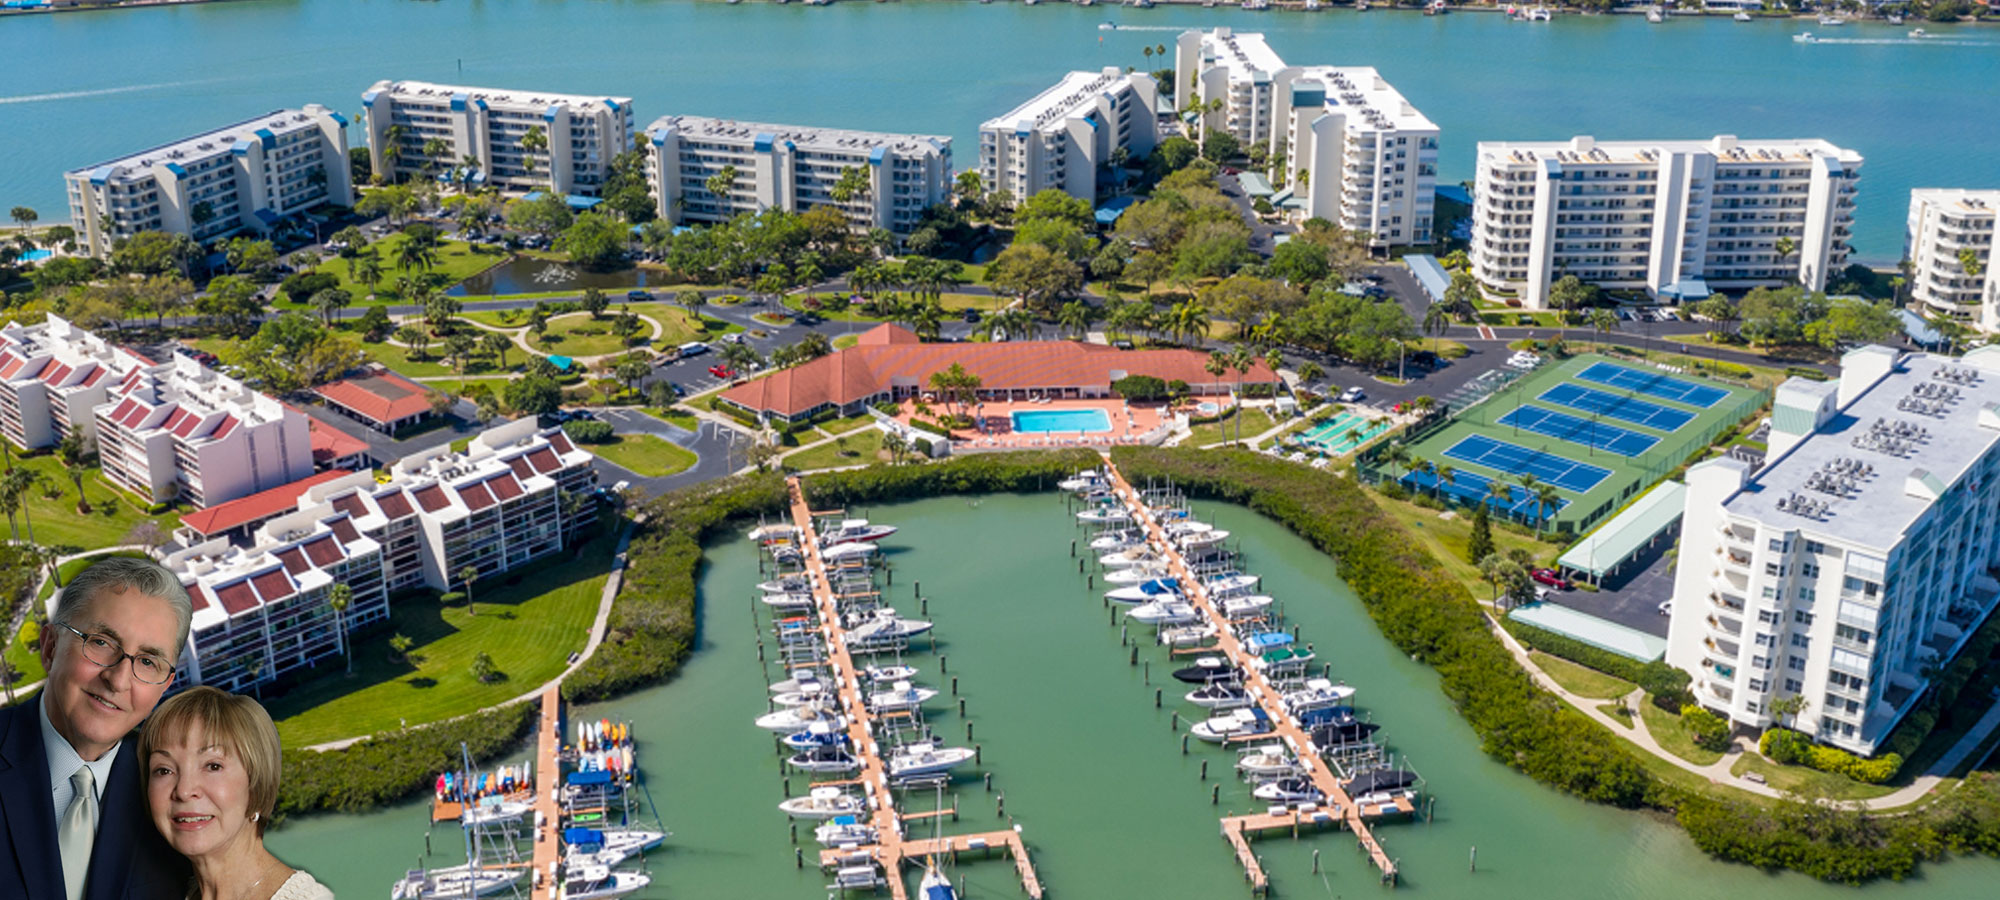 High Aerial View of HarbourSide Condos Property